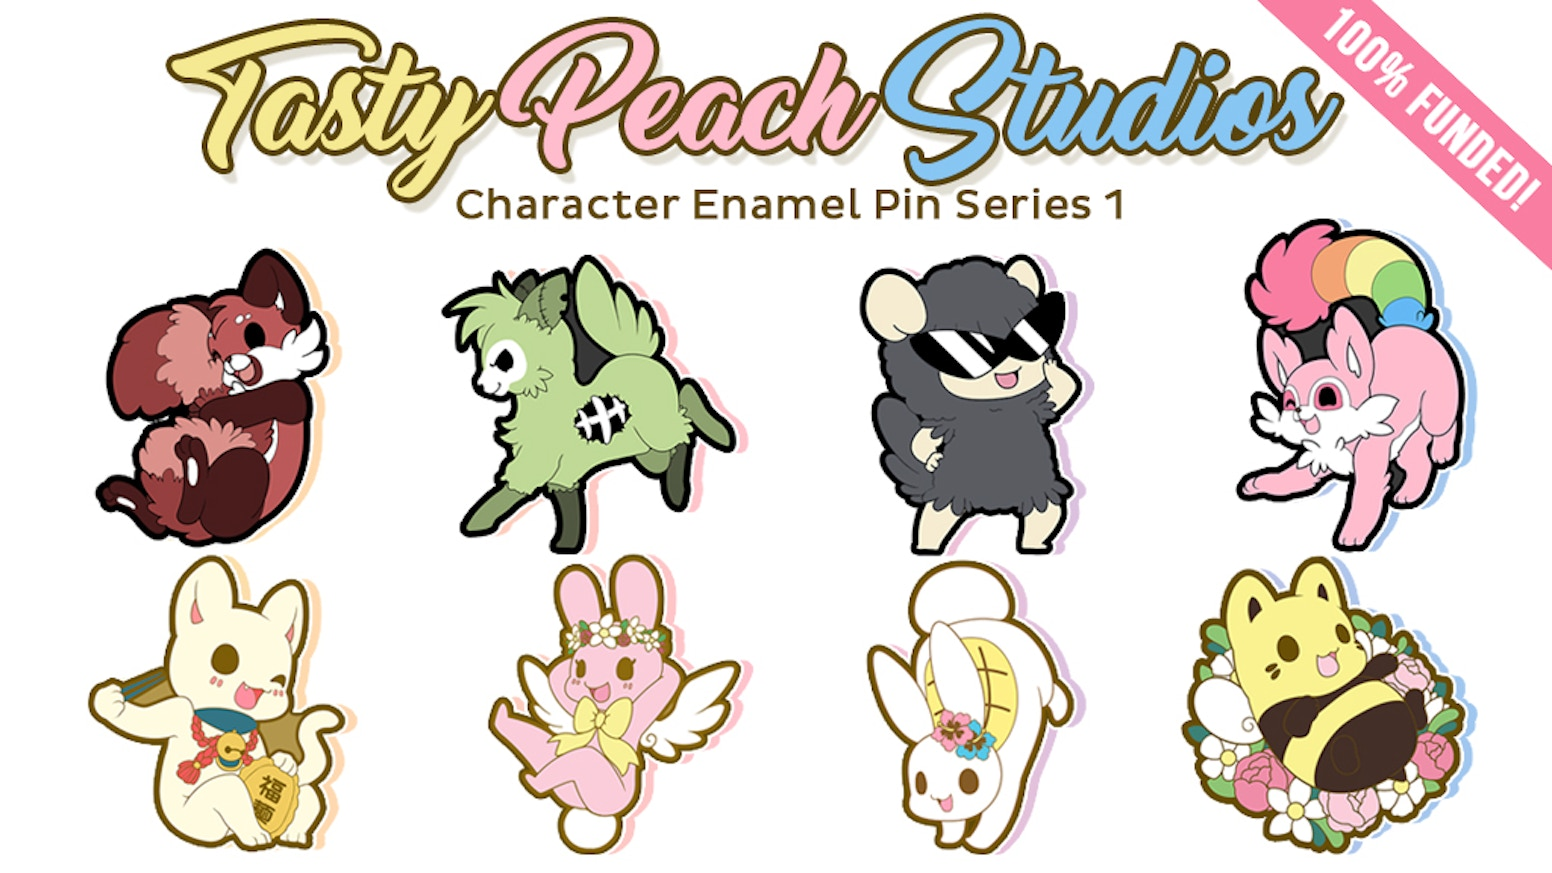 6 adorable character enamel pins from Tasty Peach Studios